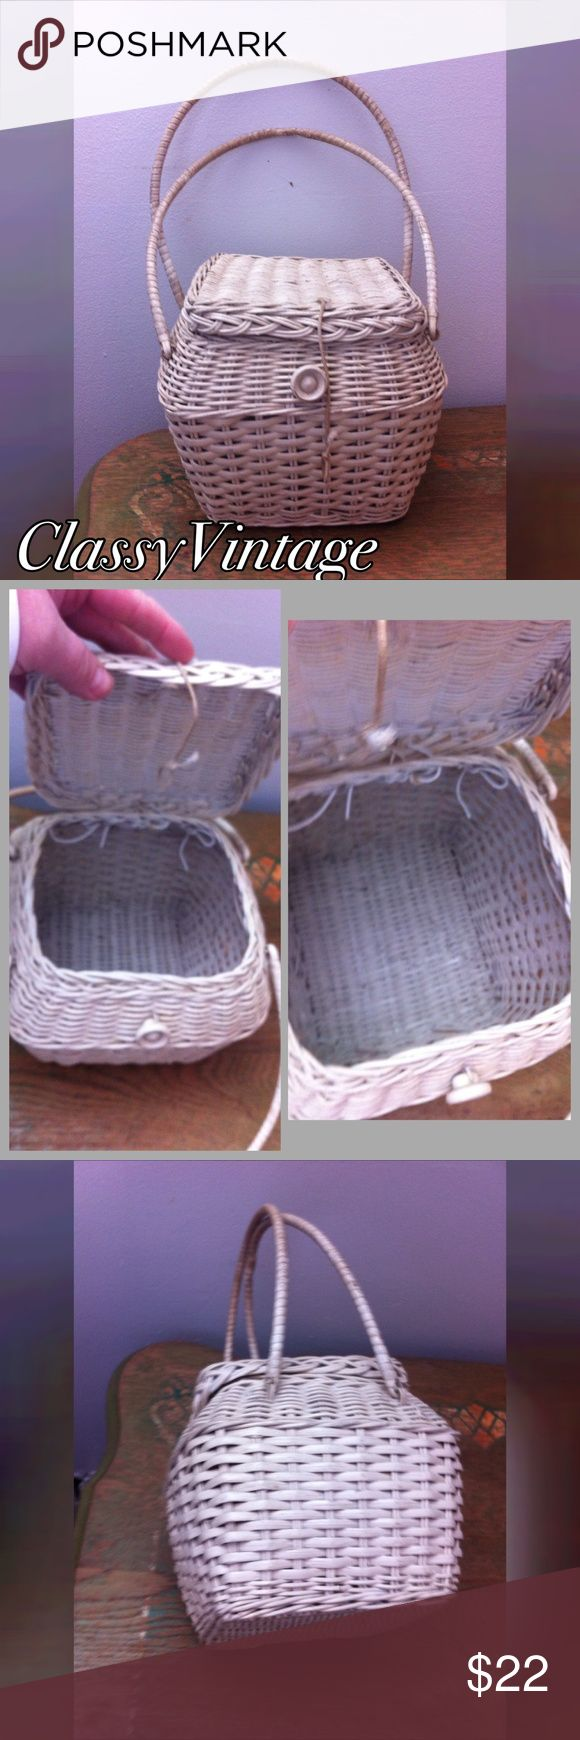 Stinking cute vintage basket handbag White wicker basket bag. Double handles attached lid. Wood button and elastic loop closure. Shabby chic at its best. Not lined no tags . Shows some wear but is expected and really looks good that way. She is 7 inches tall and each side is 6.5 wide. Vintage Bags